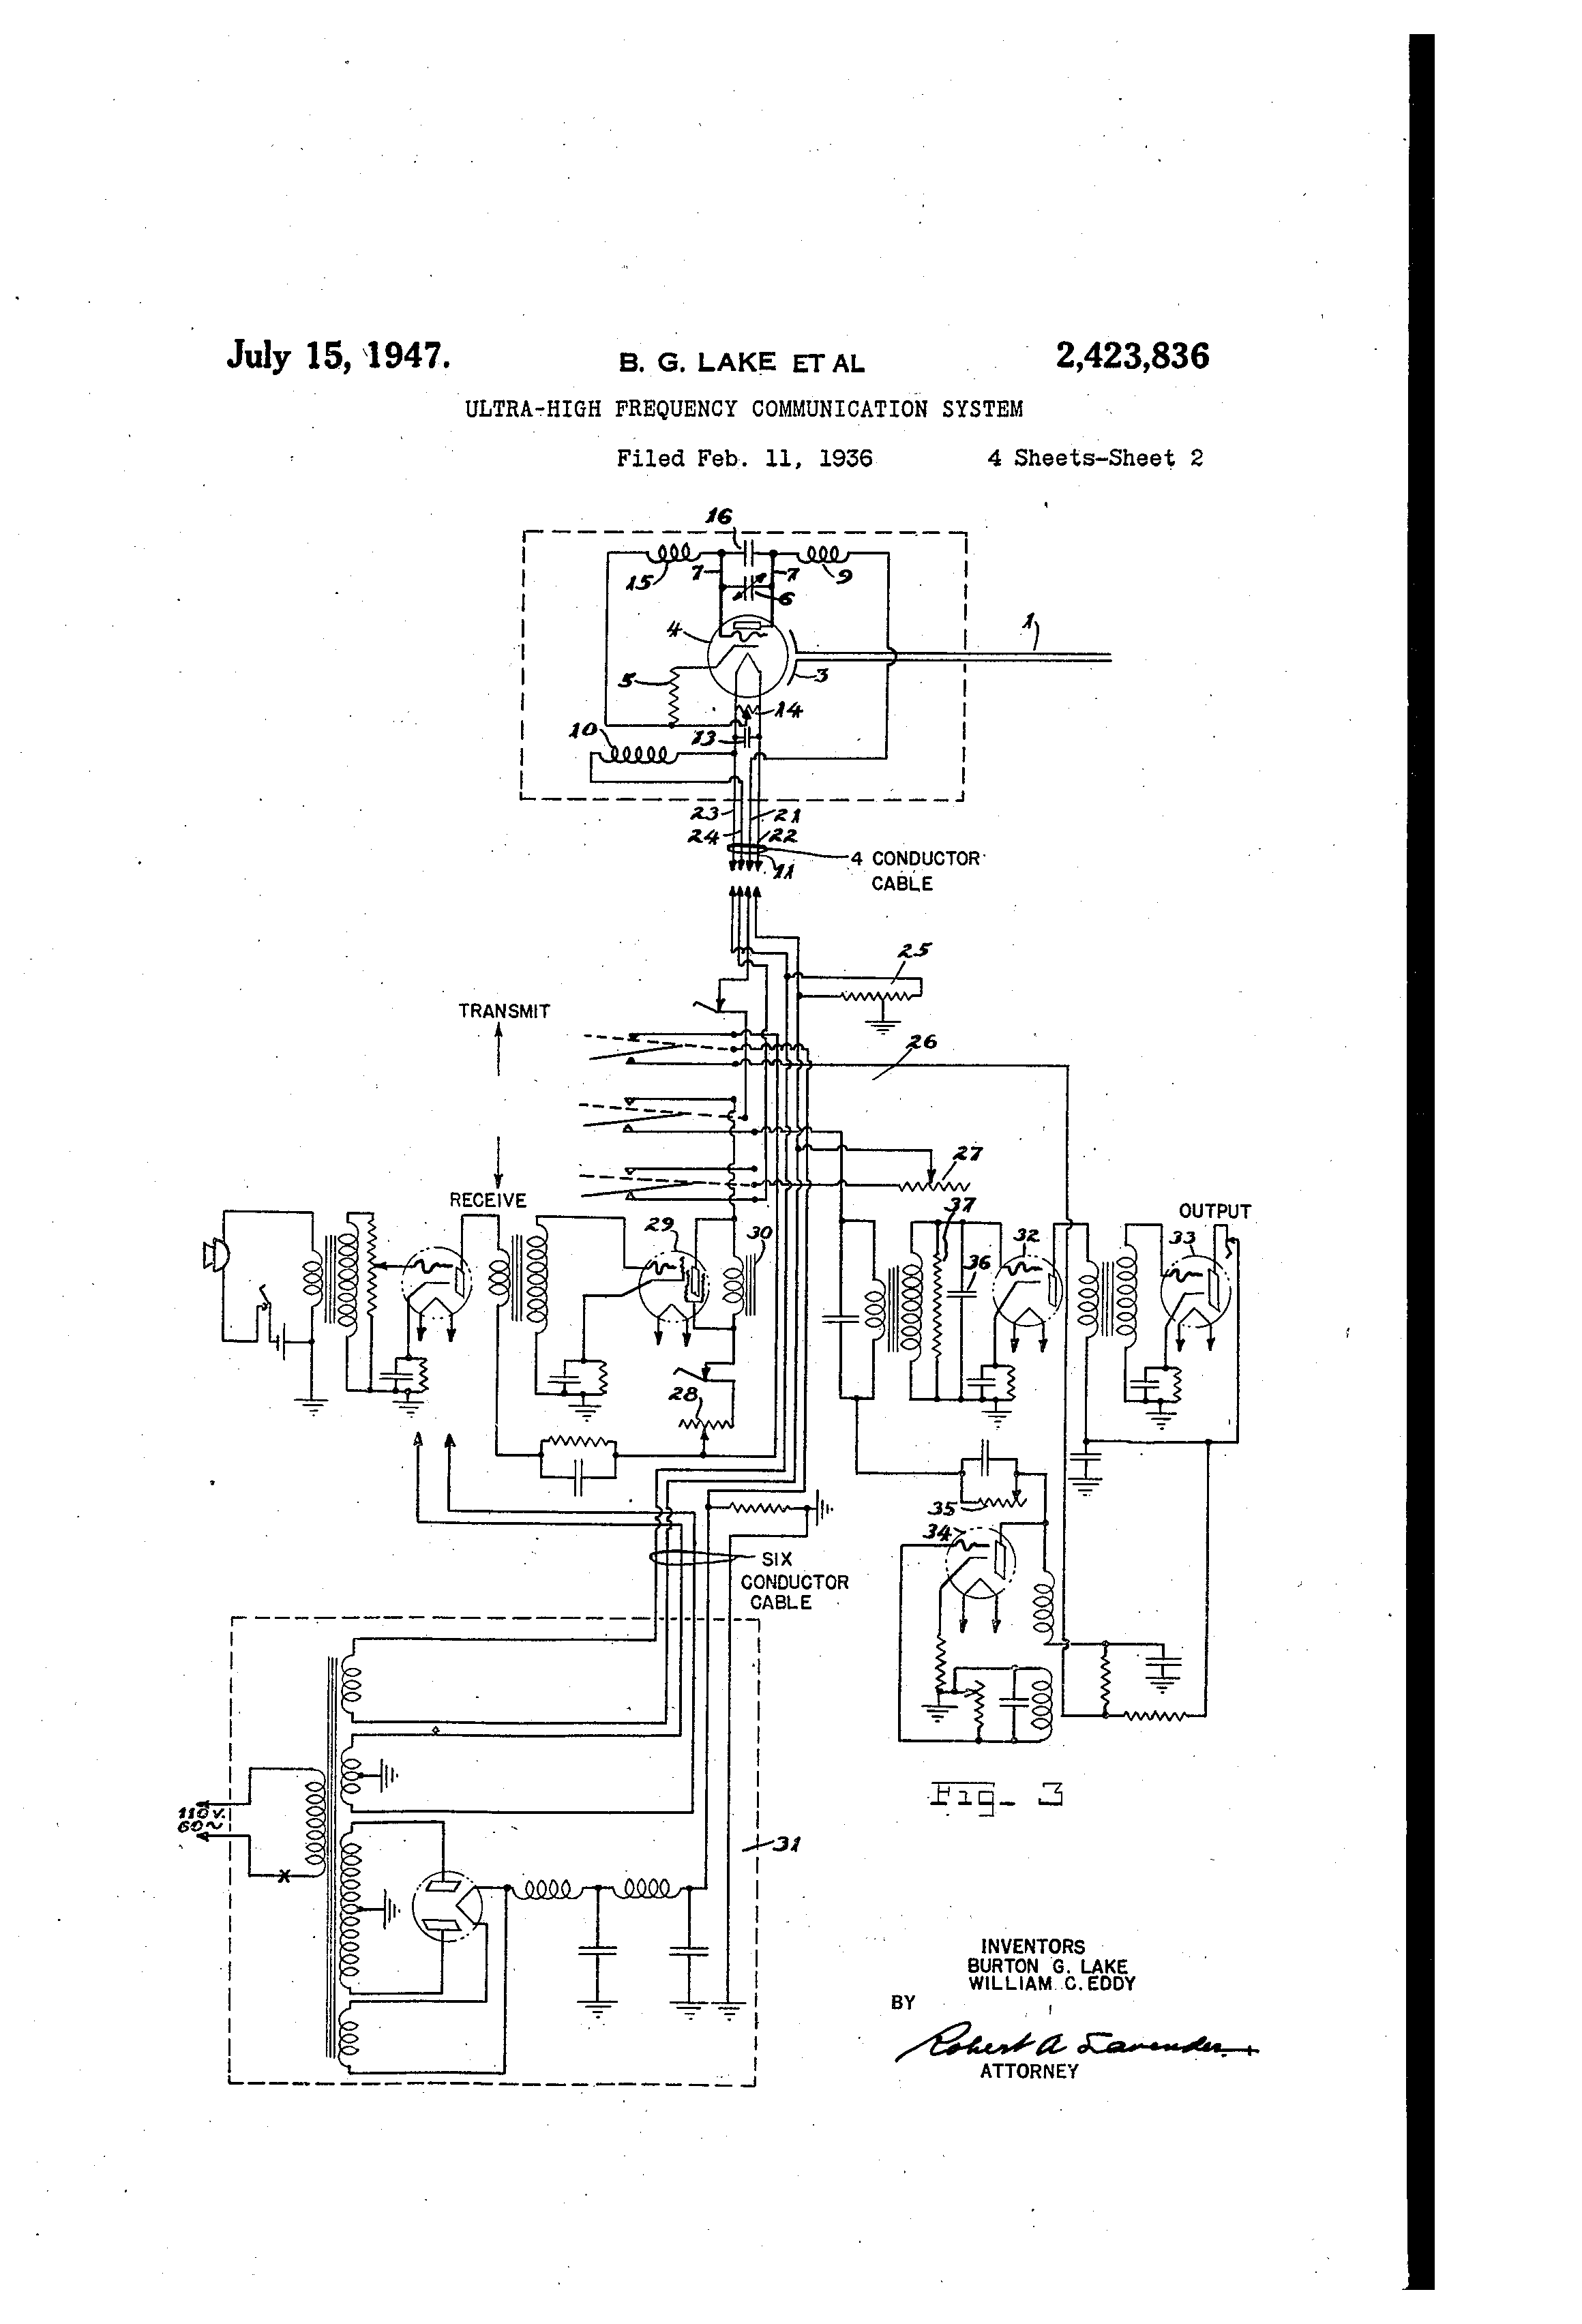 patent us2423836 - ultra high frequency communication system